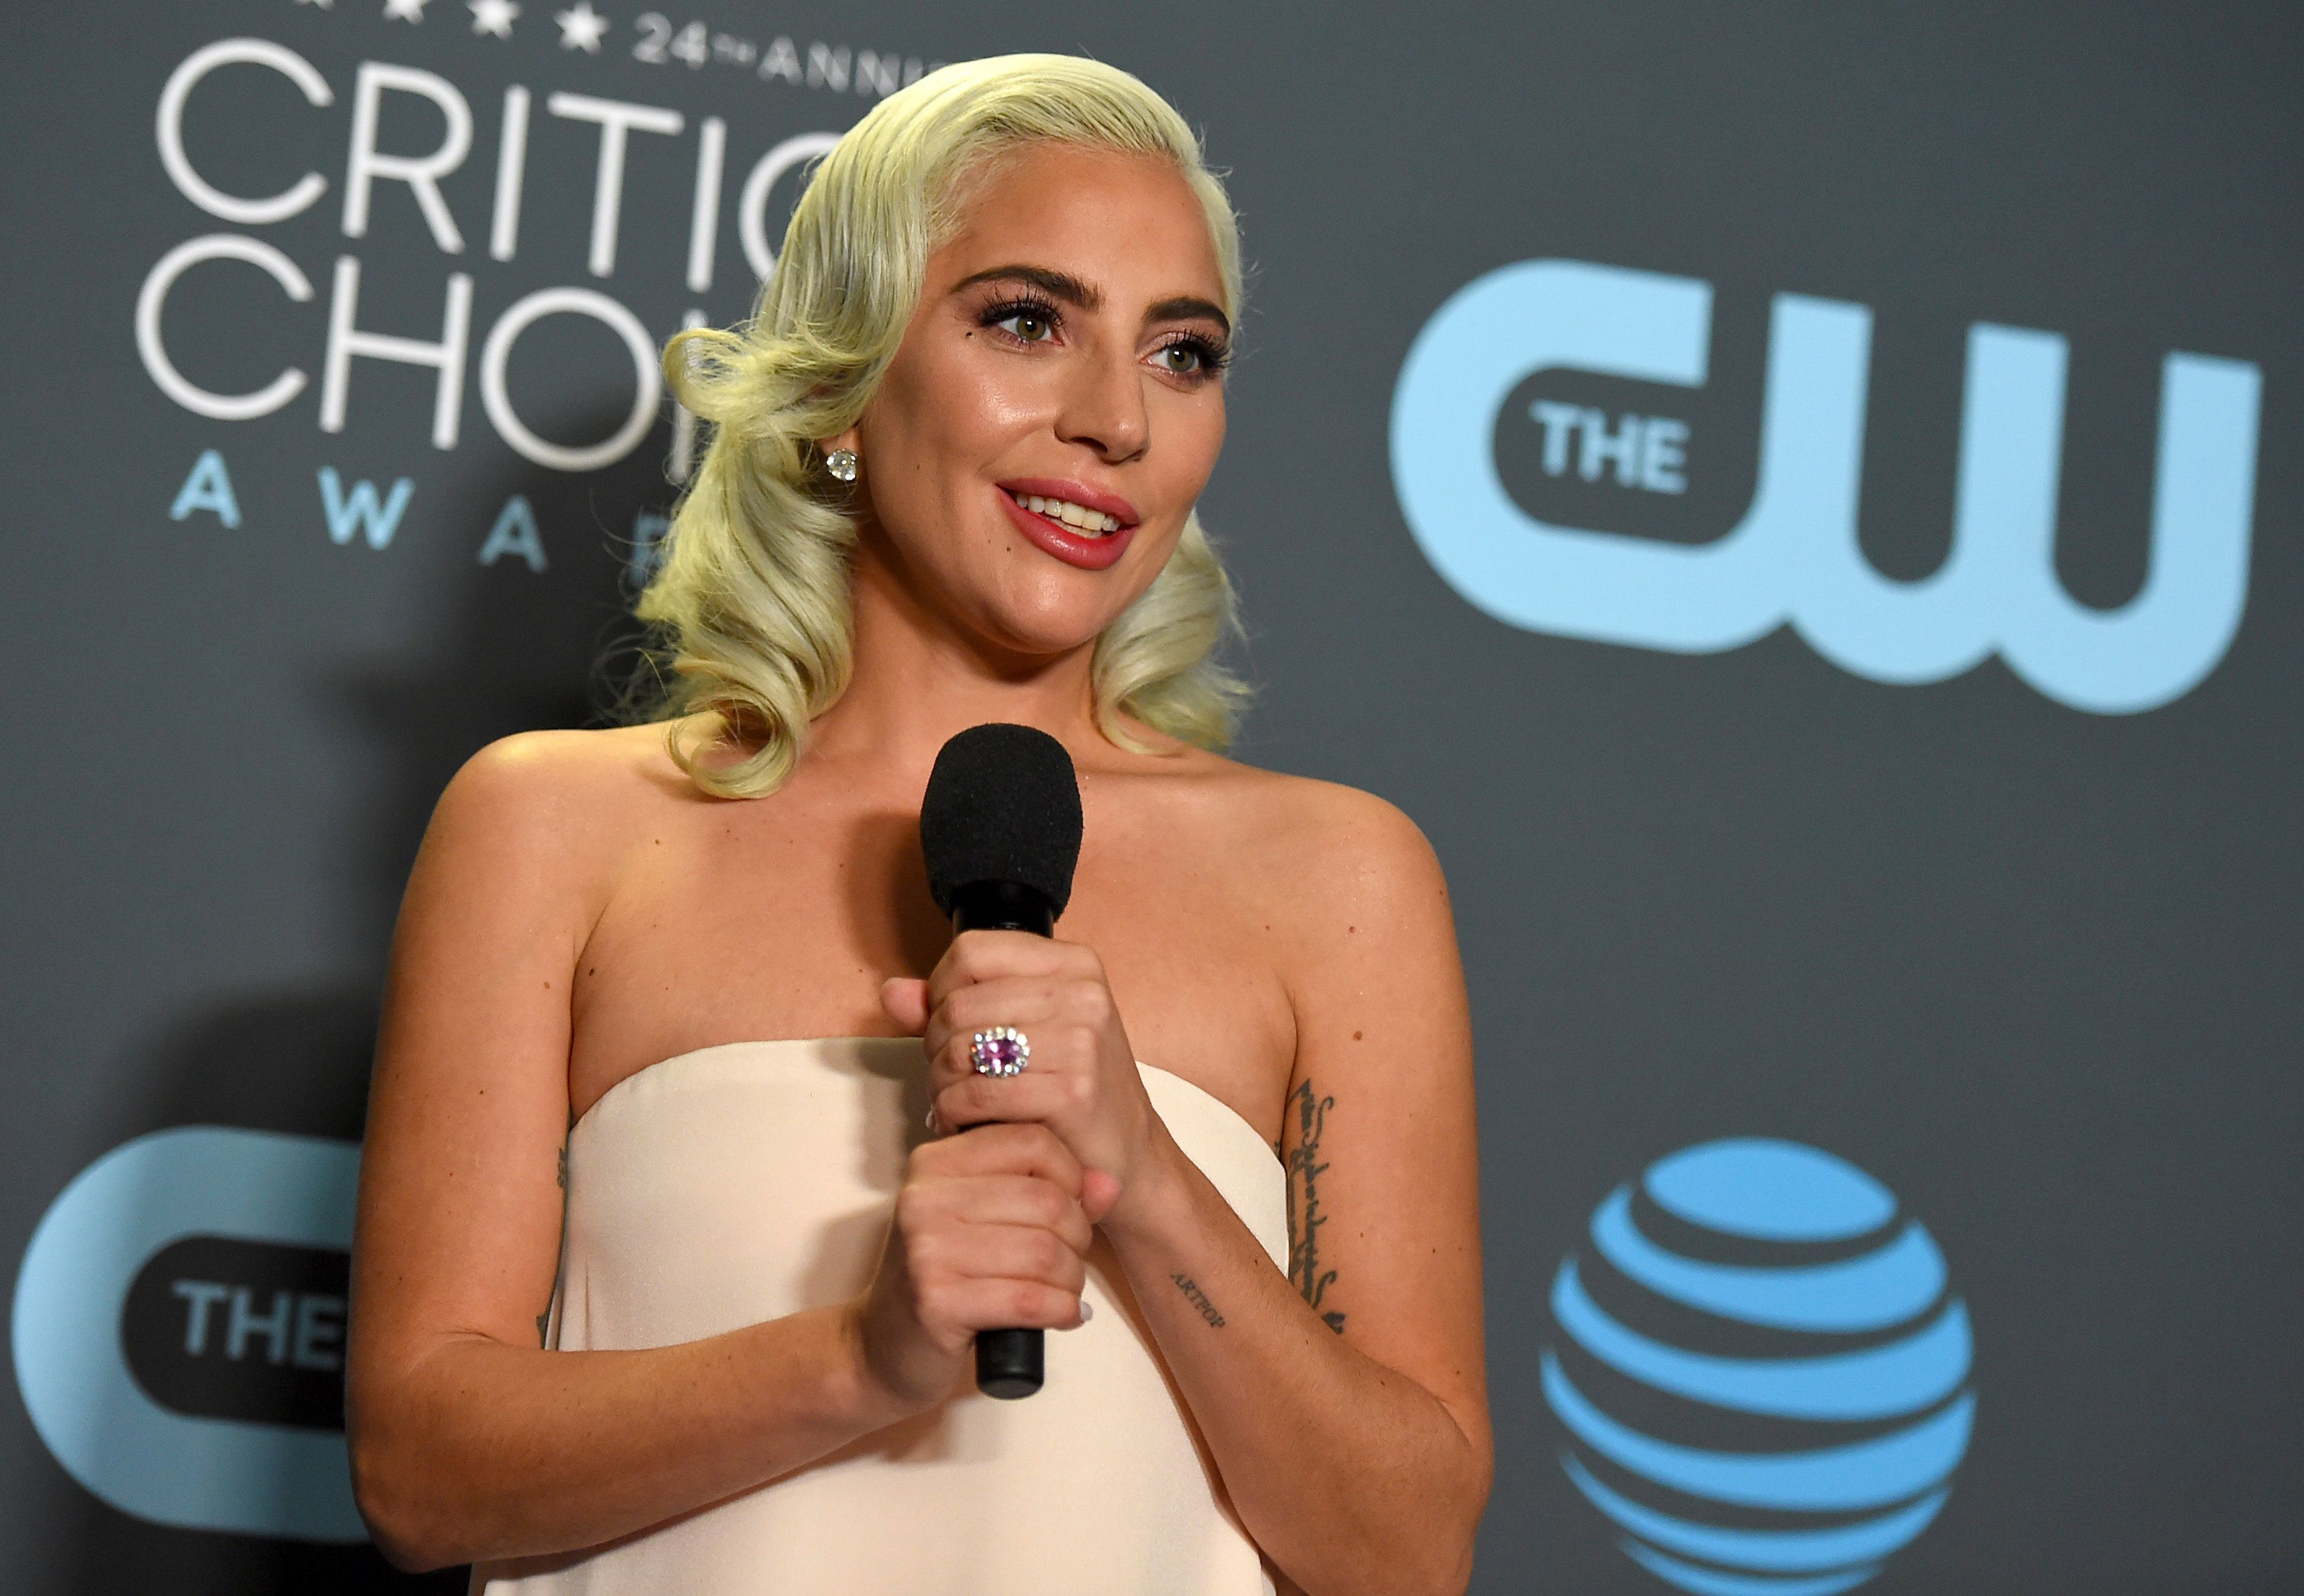 """Lady Gaga, winner of the award for best song for """"Shallow"""" from """"A Star Is Born,"""" poses in the press room at the 24th annual Critics' Choice Awards on Sunday, Jan. 13, 2019, at the Barker Hangar in Santa Monica, Calif. (Photo by Jordan Strauss/Invision/AP)"""